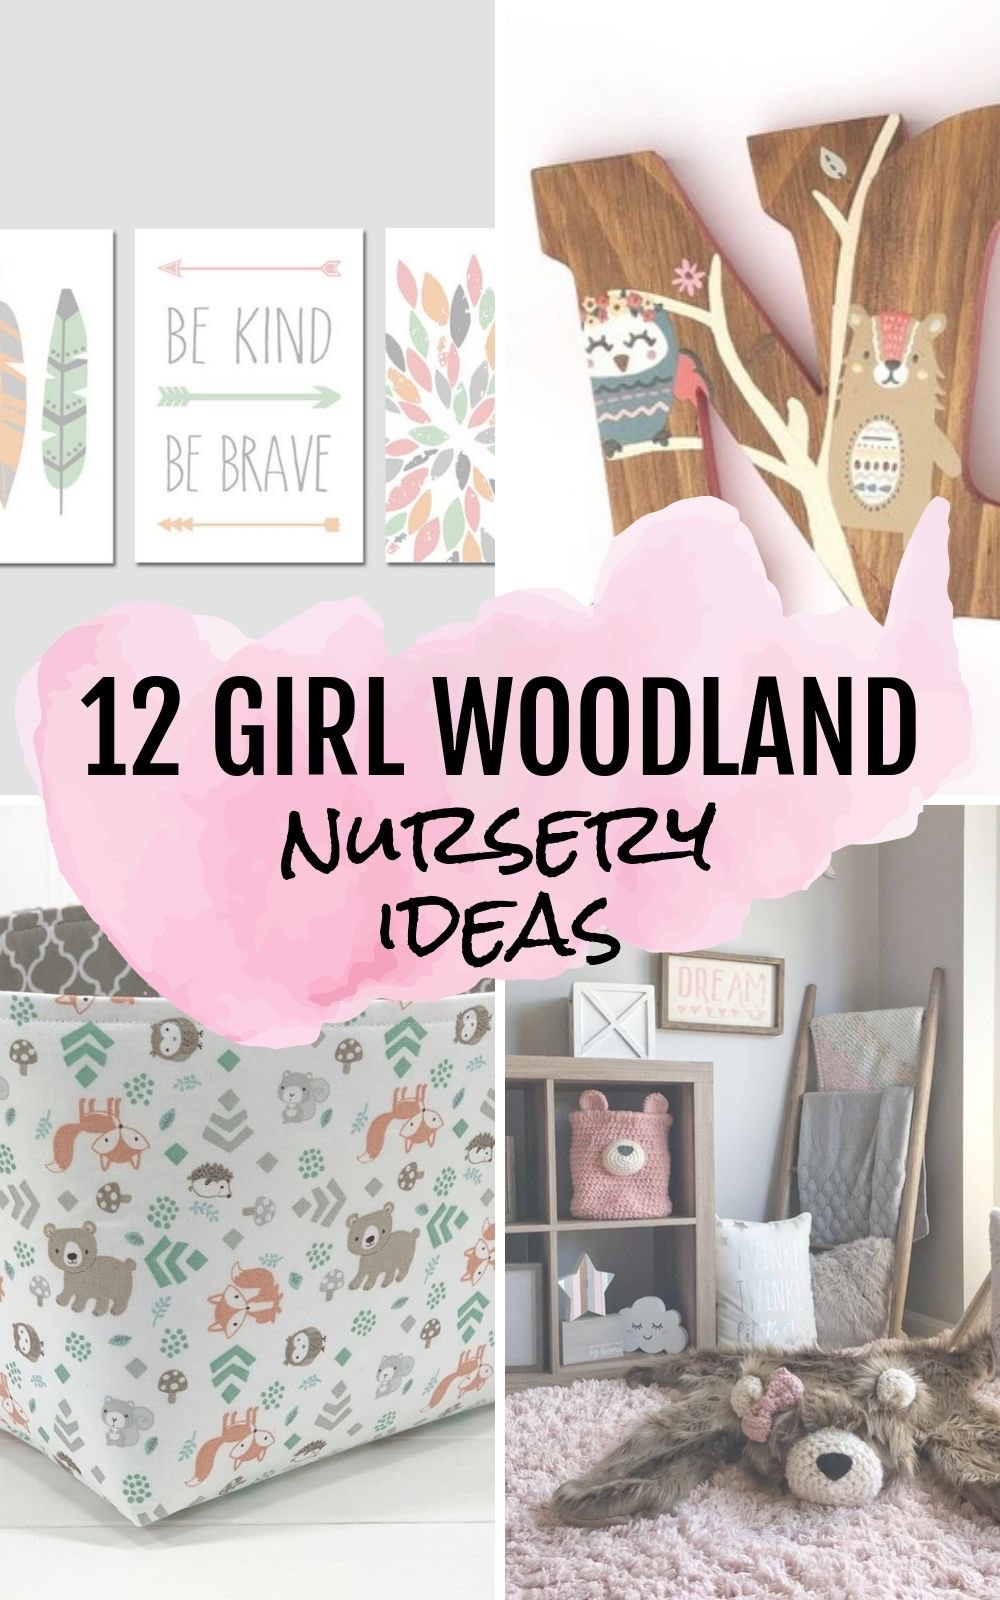 13 Baby Woodland Nursery Ideas